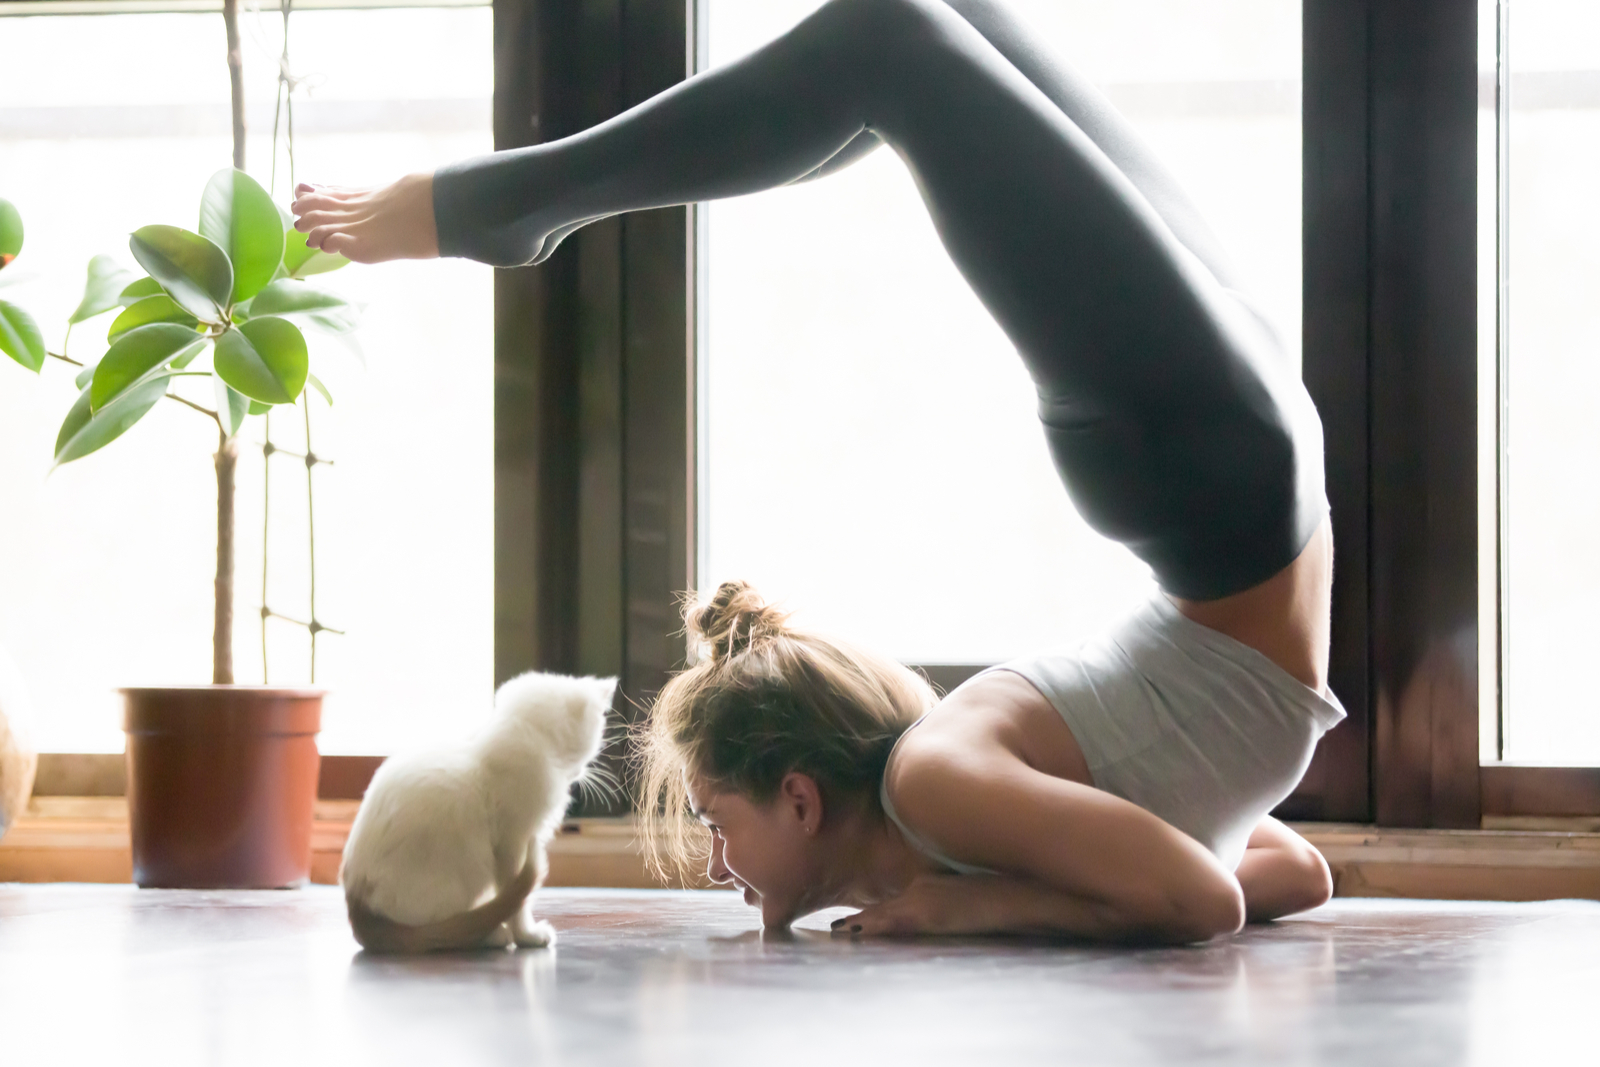 Yoga Practice with Cat | Yoga for Beginners: A Definitive Guide If You're New To Yoga